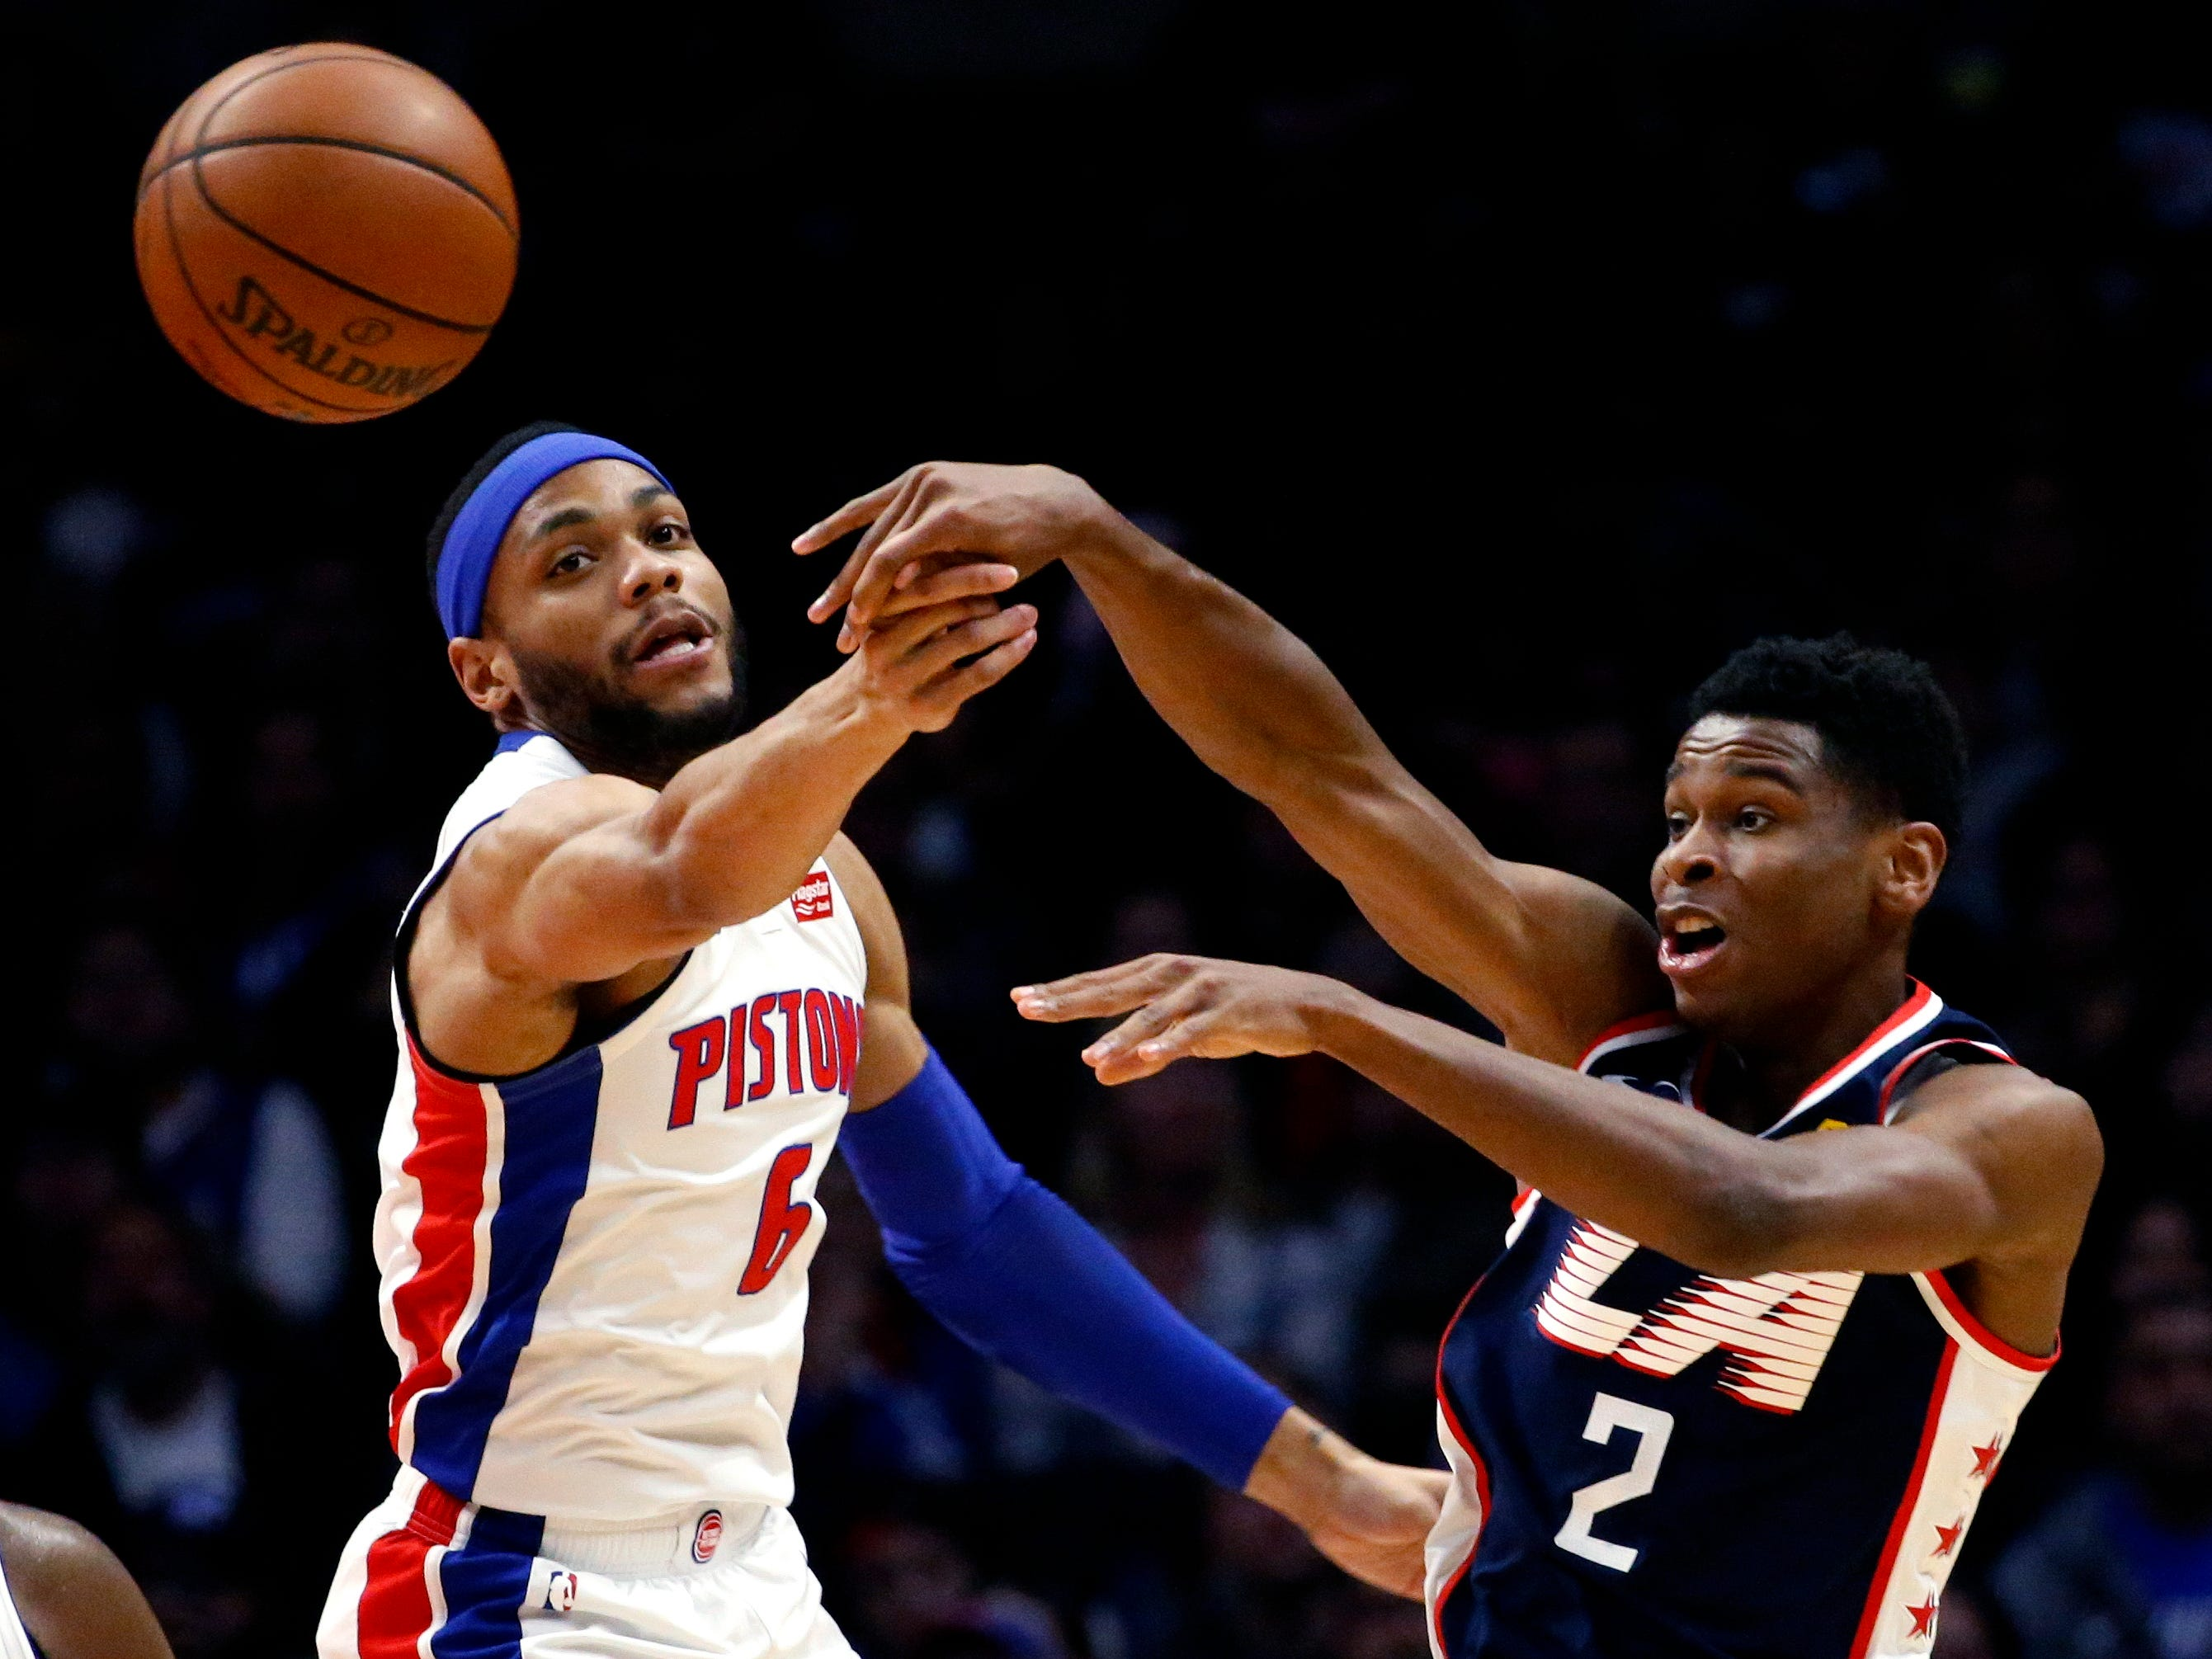 Los Angeles Clippers' Shai Gilgeous-Alexander passes against Detroit Pistons' Bruce Brown during the second half Saturday, Jan. 12, 2019, in Los Angeles.